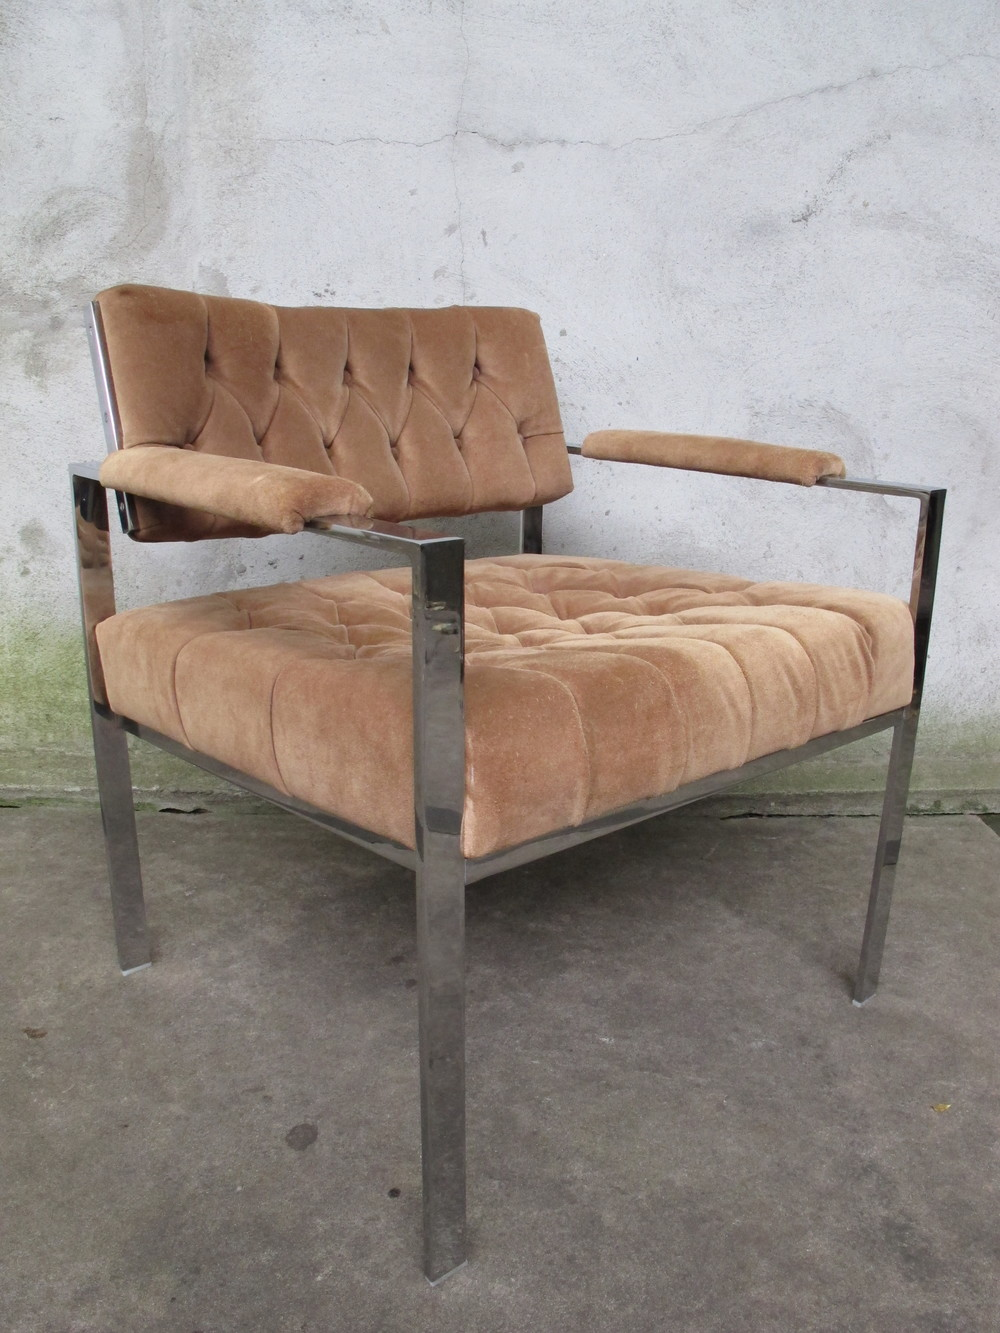 MID CENTURY FLAT BAR LOUNGE CHAIR BY HARVEY PROBBER